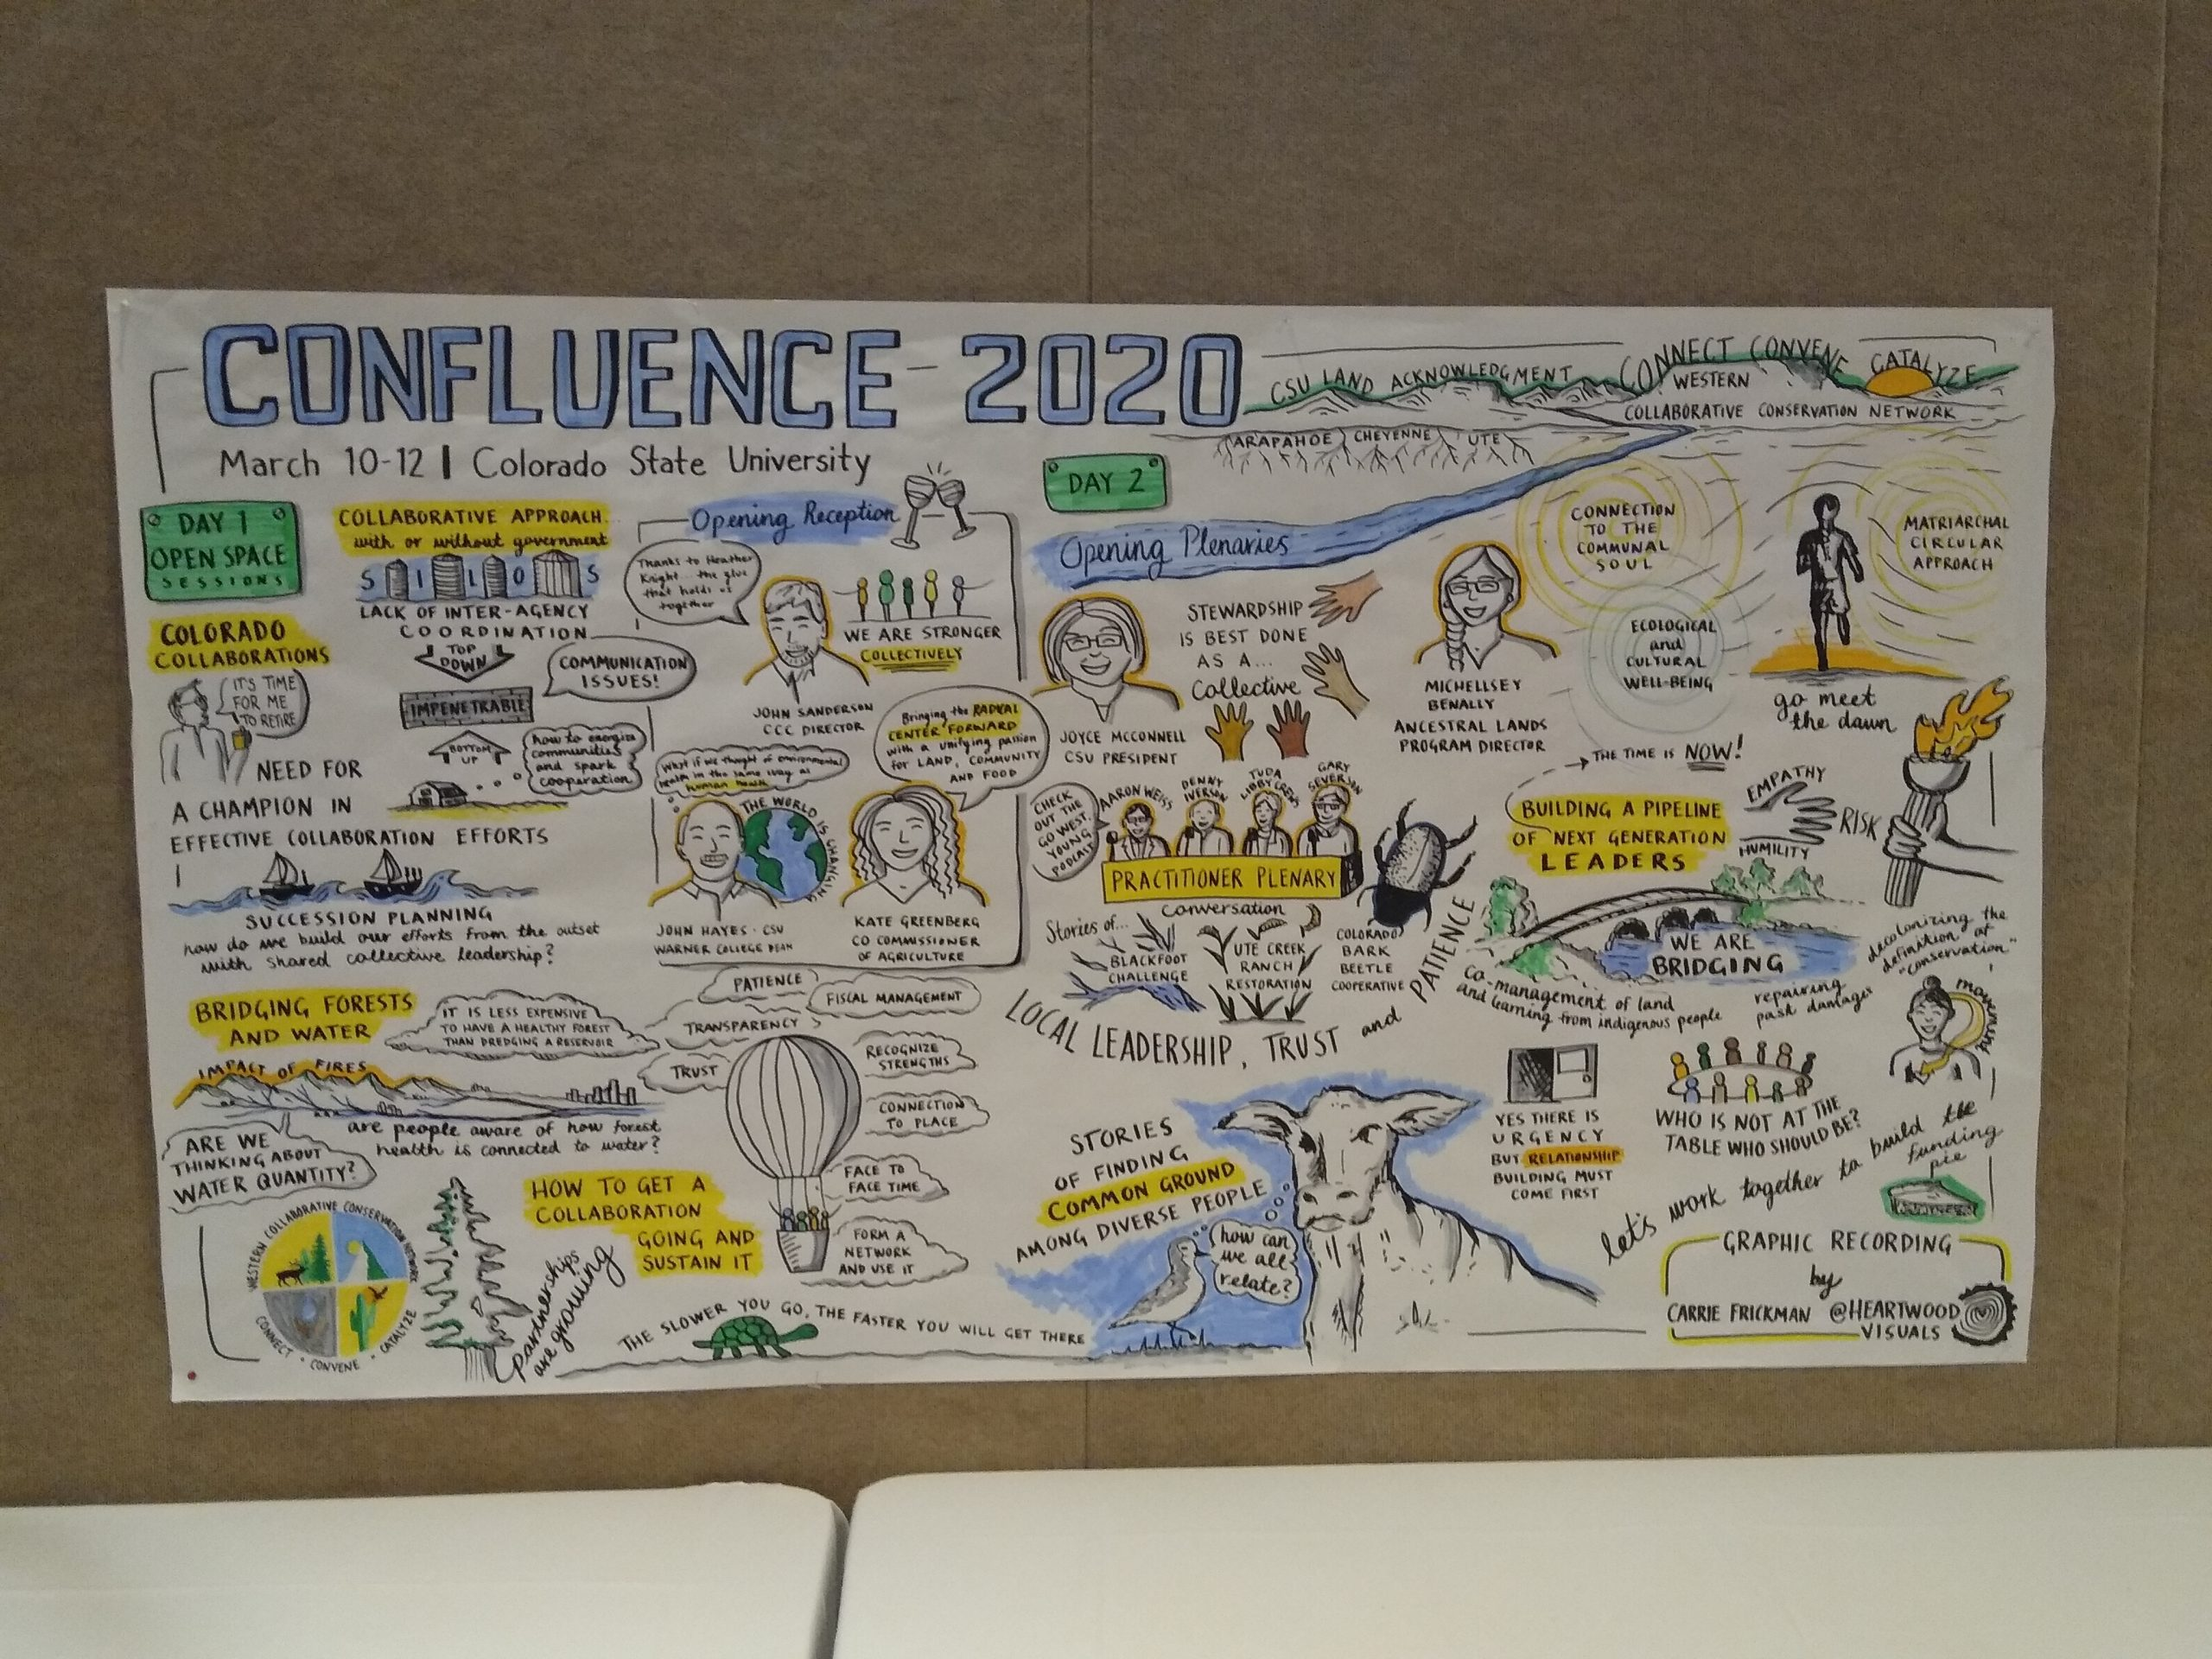 WCCN Confluence 2020 Poster